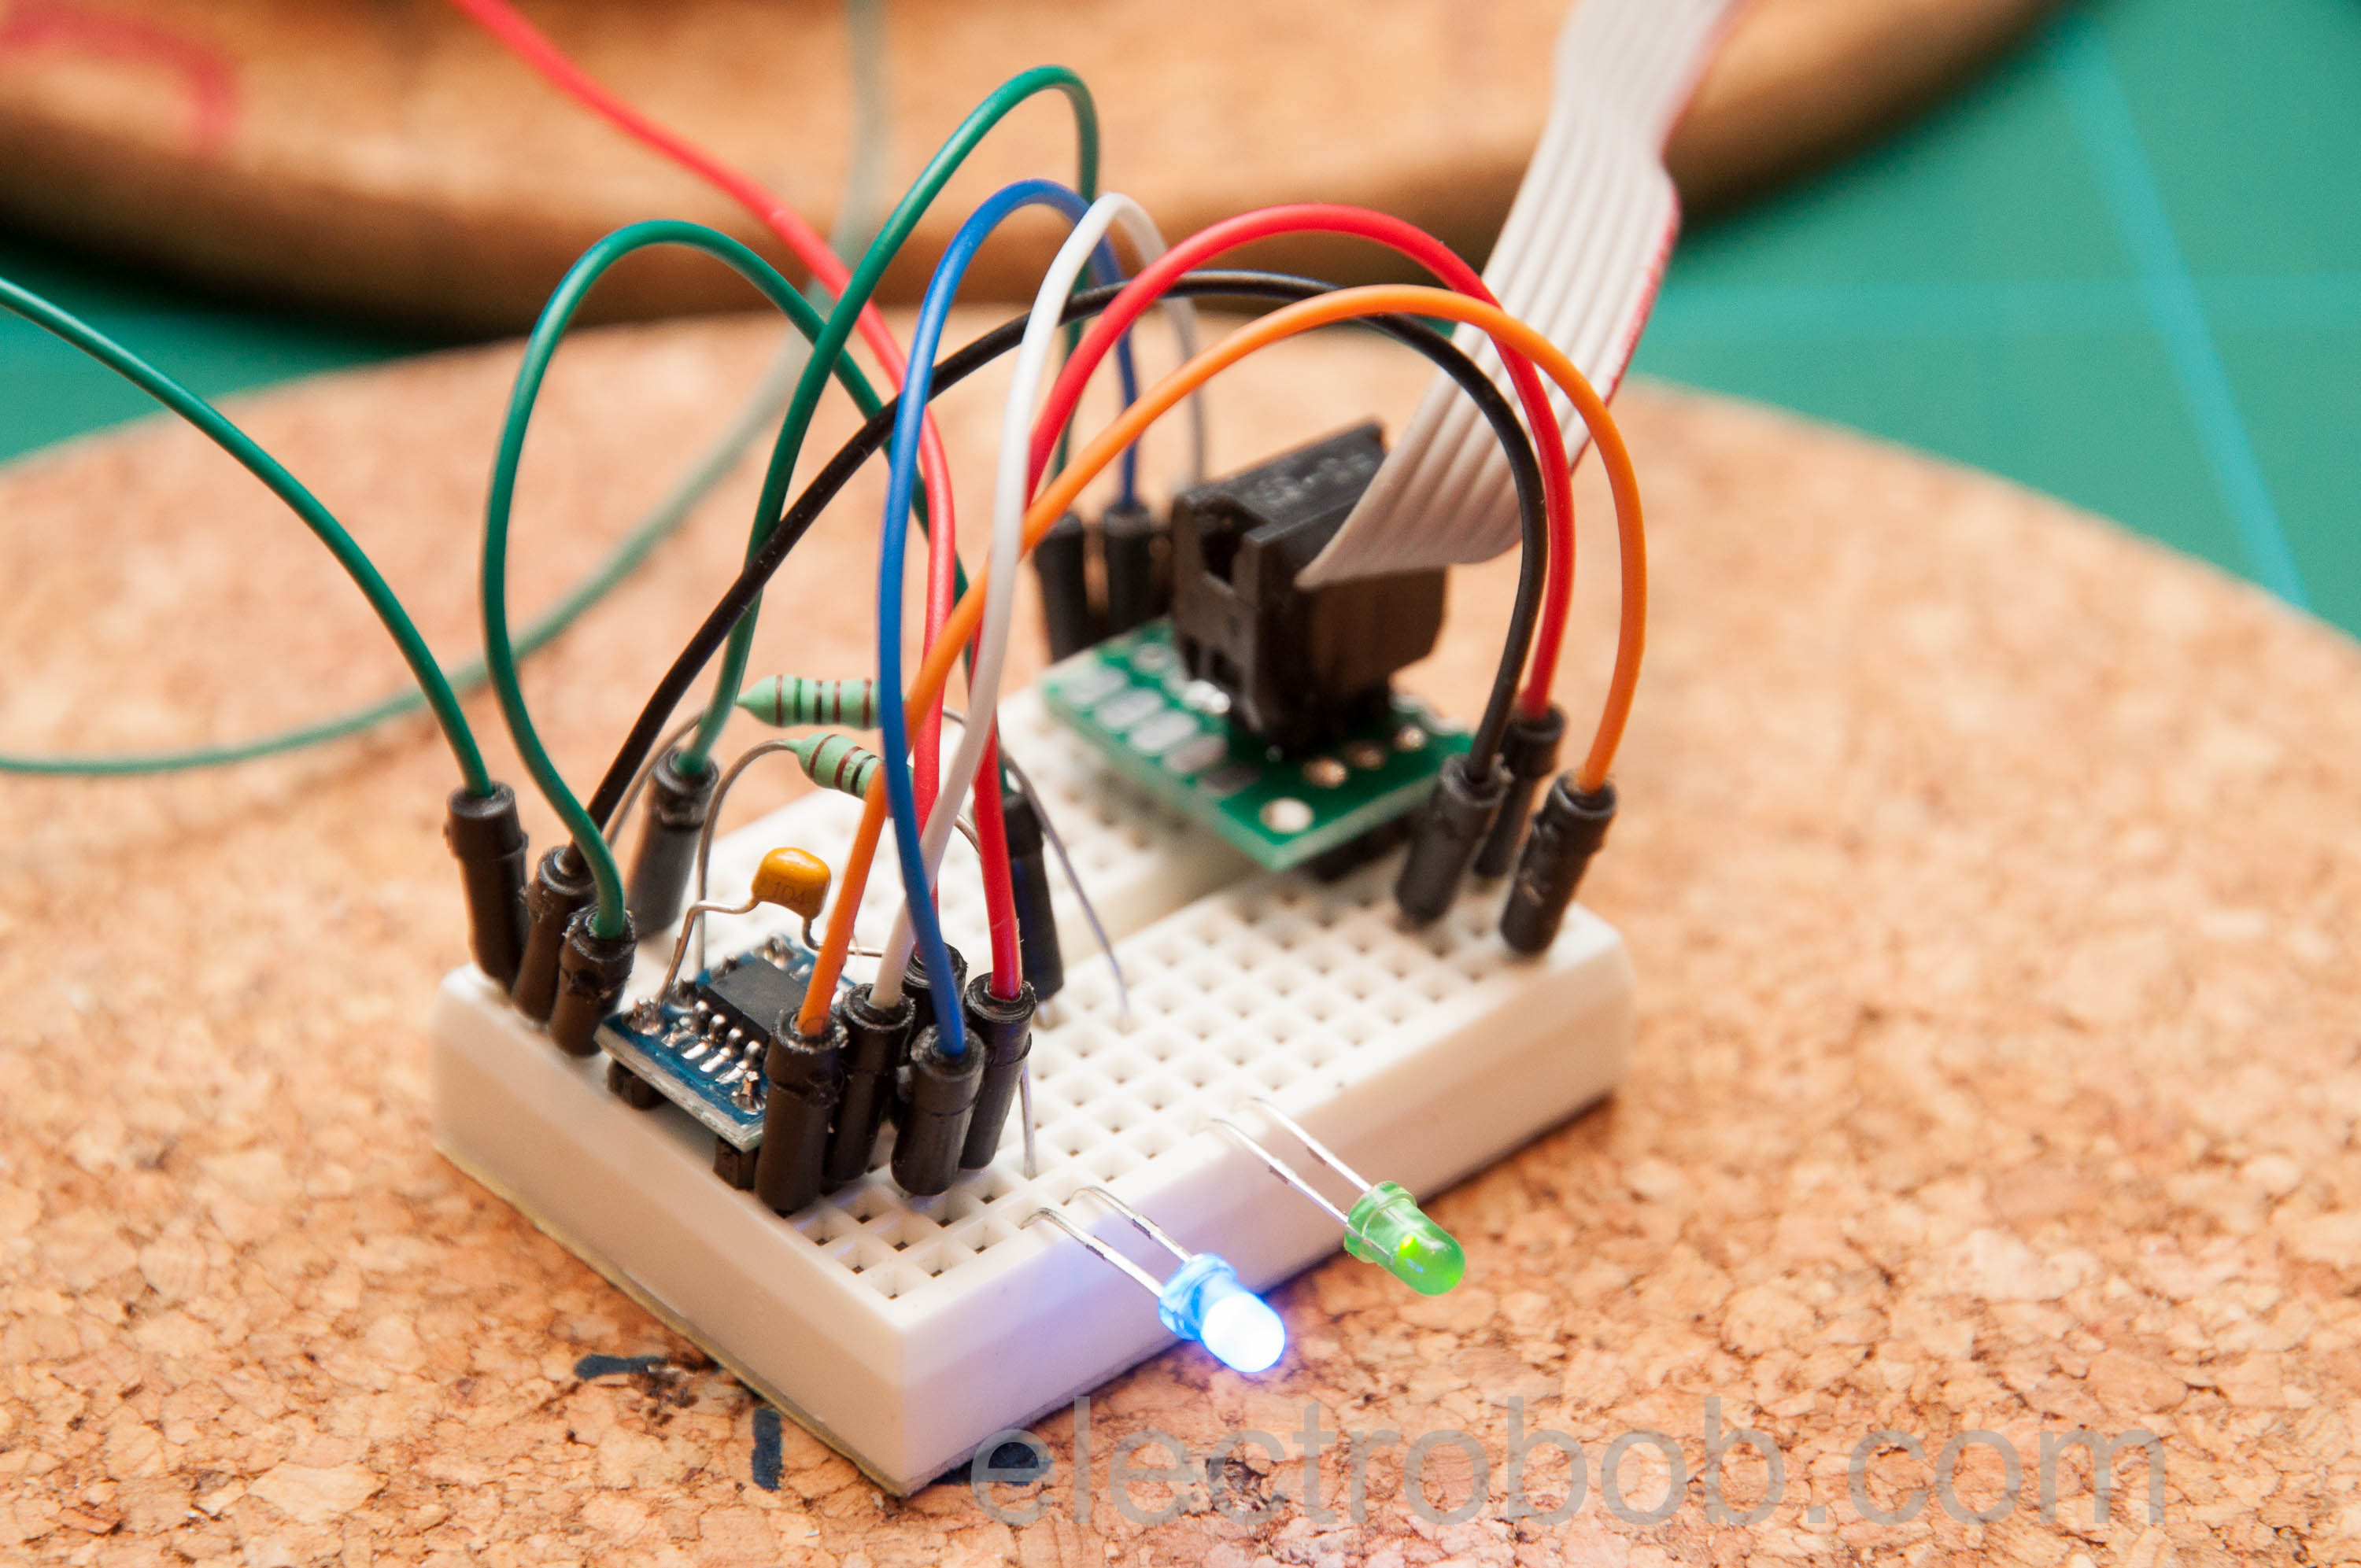 Autoresetrrr Electro Bob Simple Led Blinking Circuits Eeweb Community So Far The Software Is Incomplete But Reset Time Out Working Blue One That Will Blink While Green Simulates Device